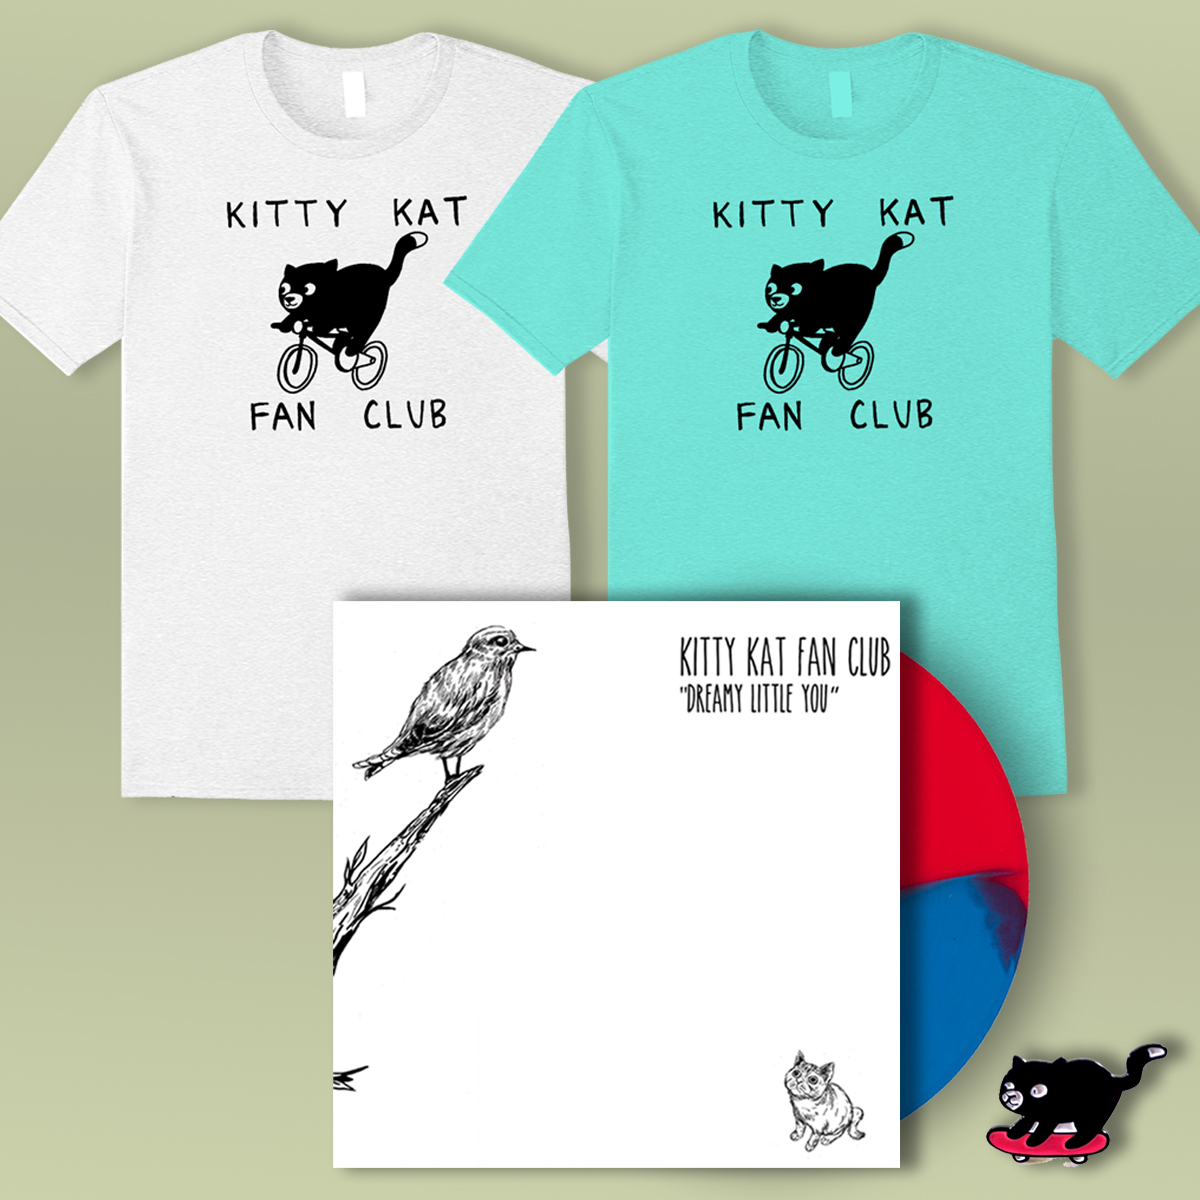 KITTY KAT FAN CLUB